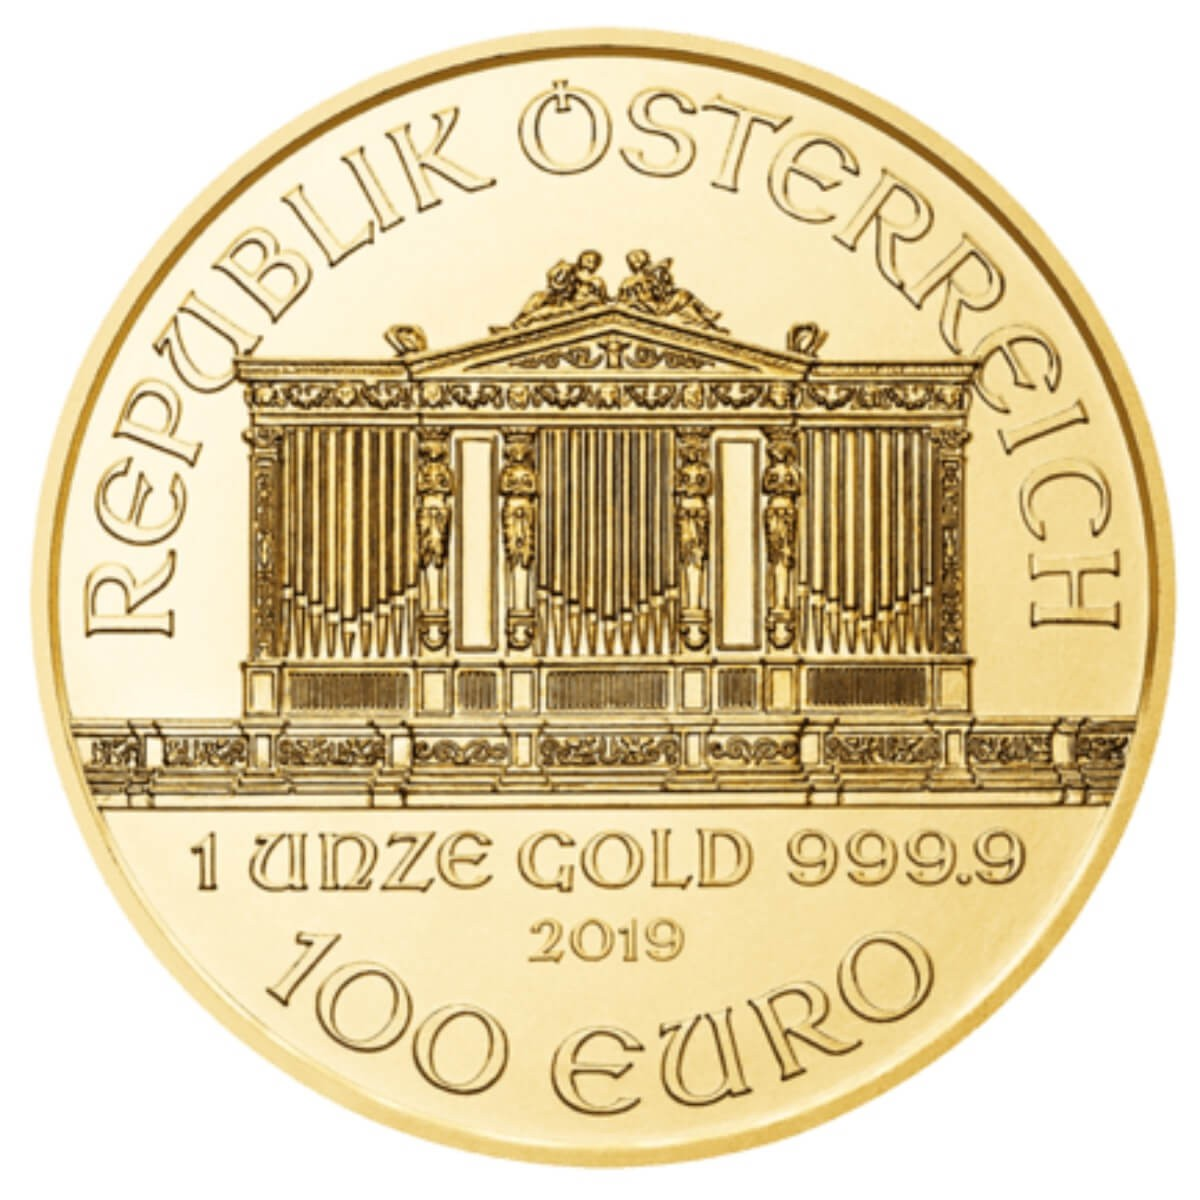 1 Ounce Gold Austrian Philharmonic 2019